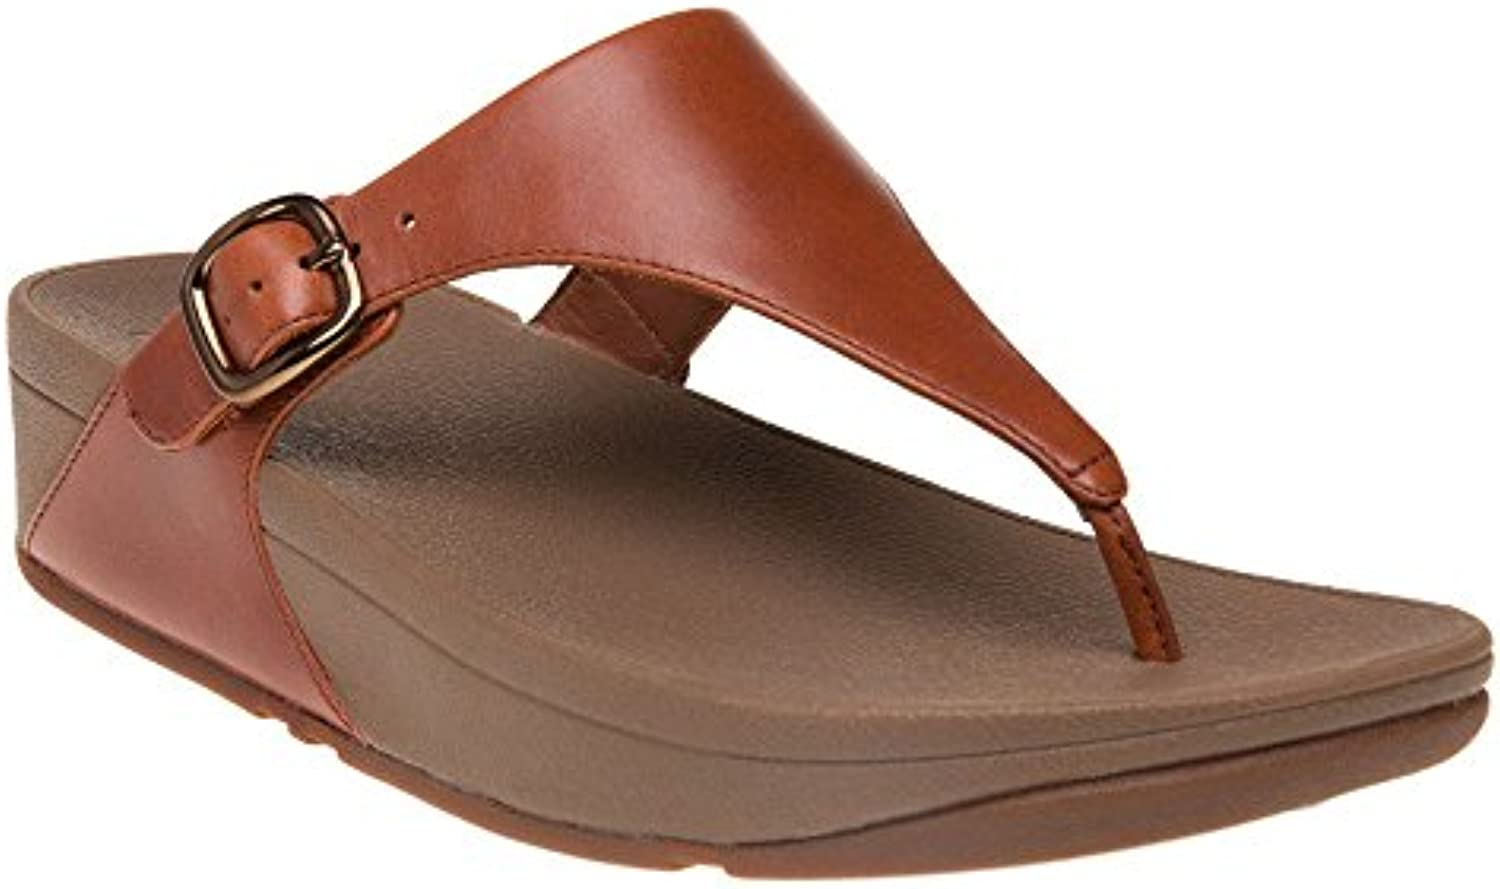 Fitflop The Skinny, Chanclas para Mujer